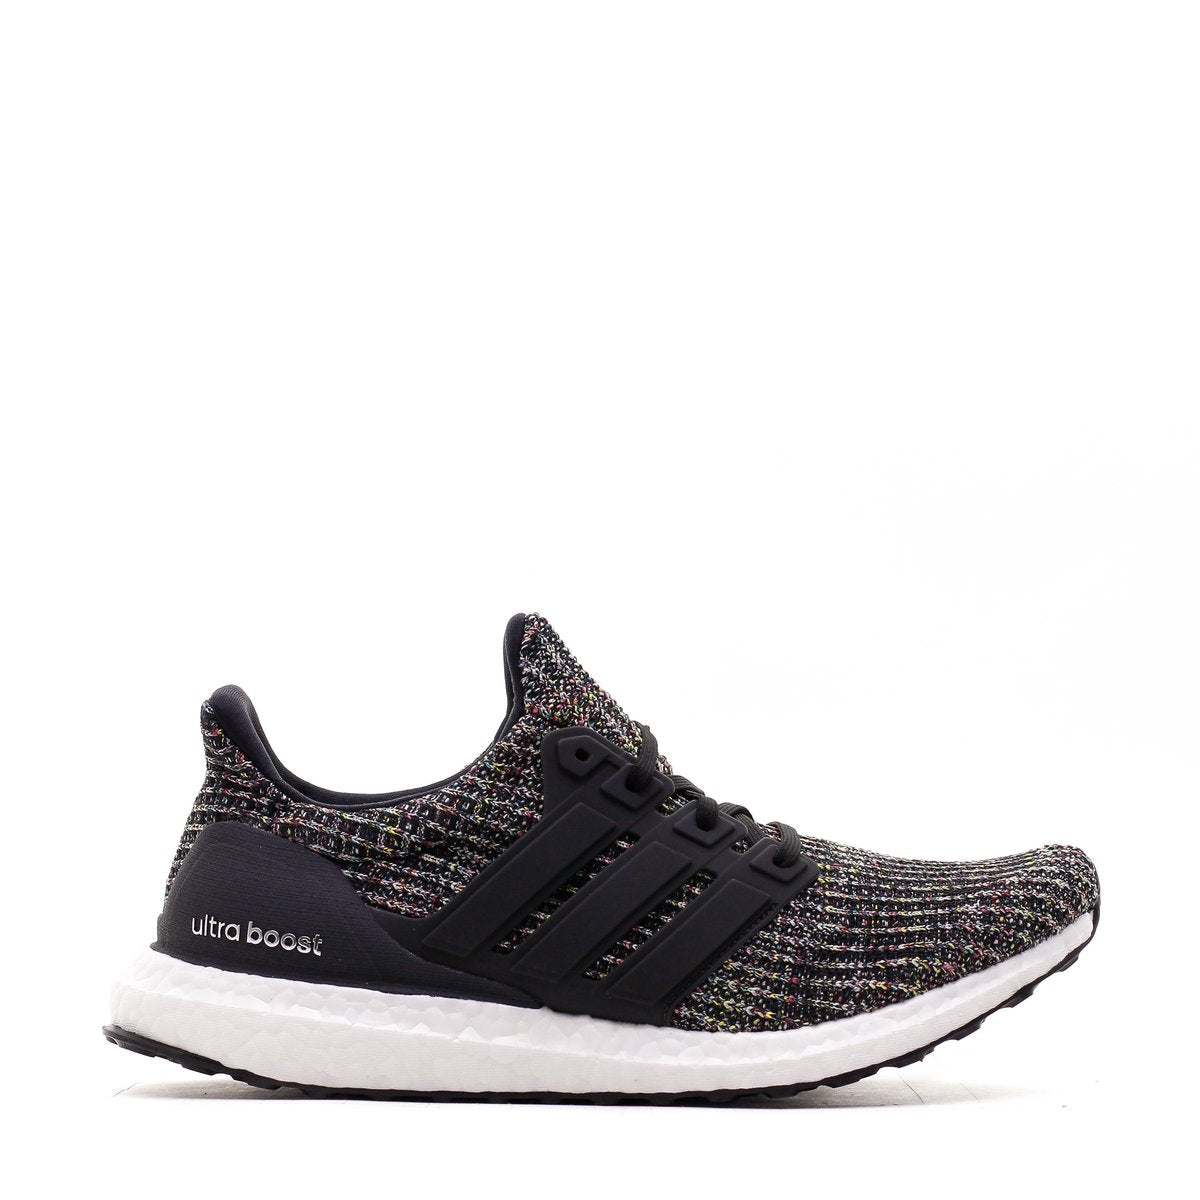 4532a8e8f Mens Adidas Ultra Boost 4.0 Core Black Carbon Ash Silver CM8110